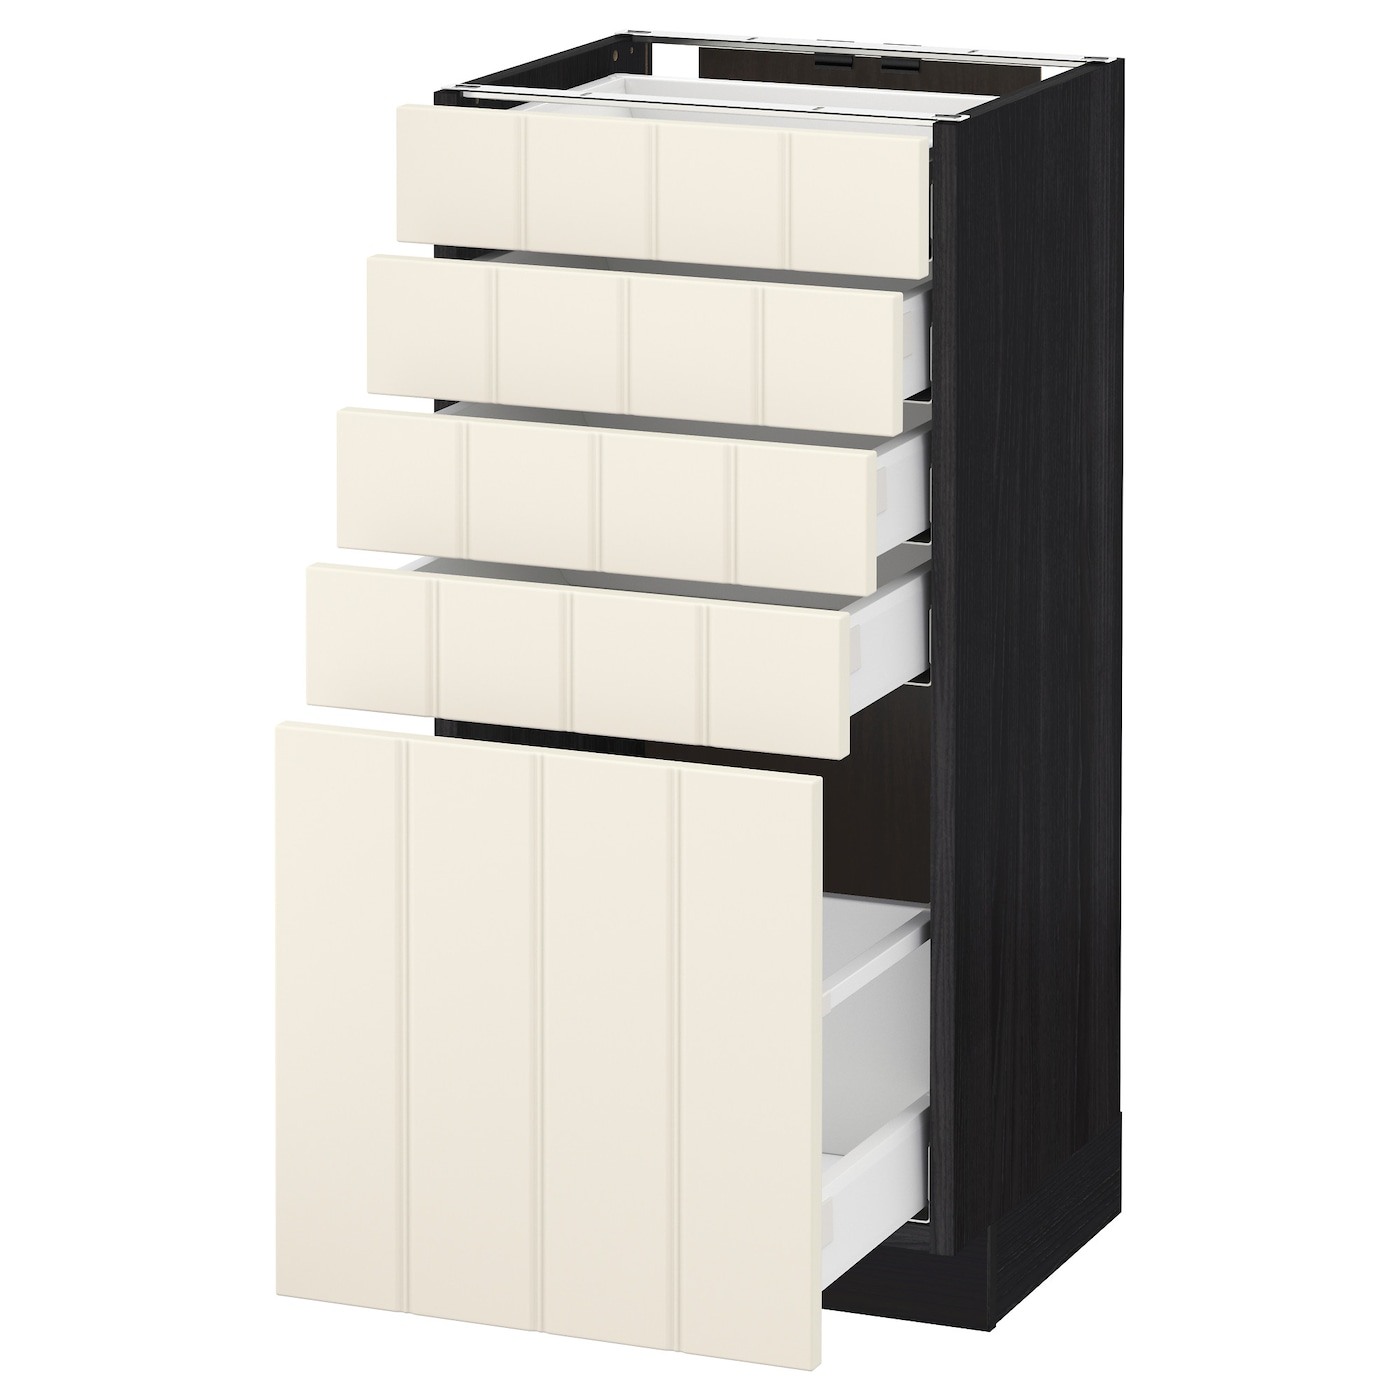 metod maximera base cabinet with 5 drawers black hittarp off white 40 x 37 cm ikea. Black Bedroom Furniture Sets. Home Design Ideas